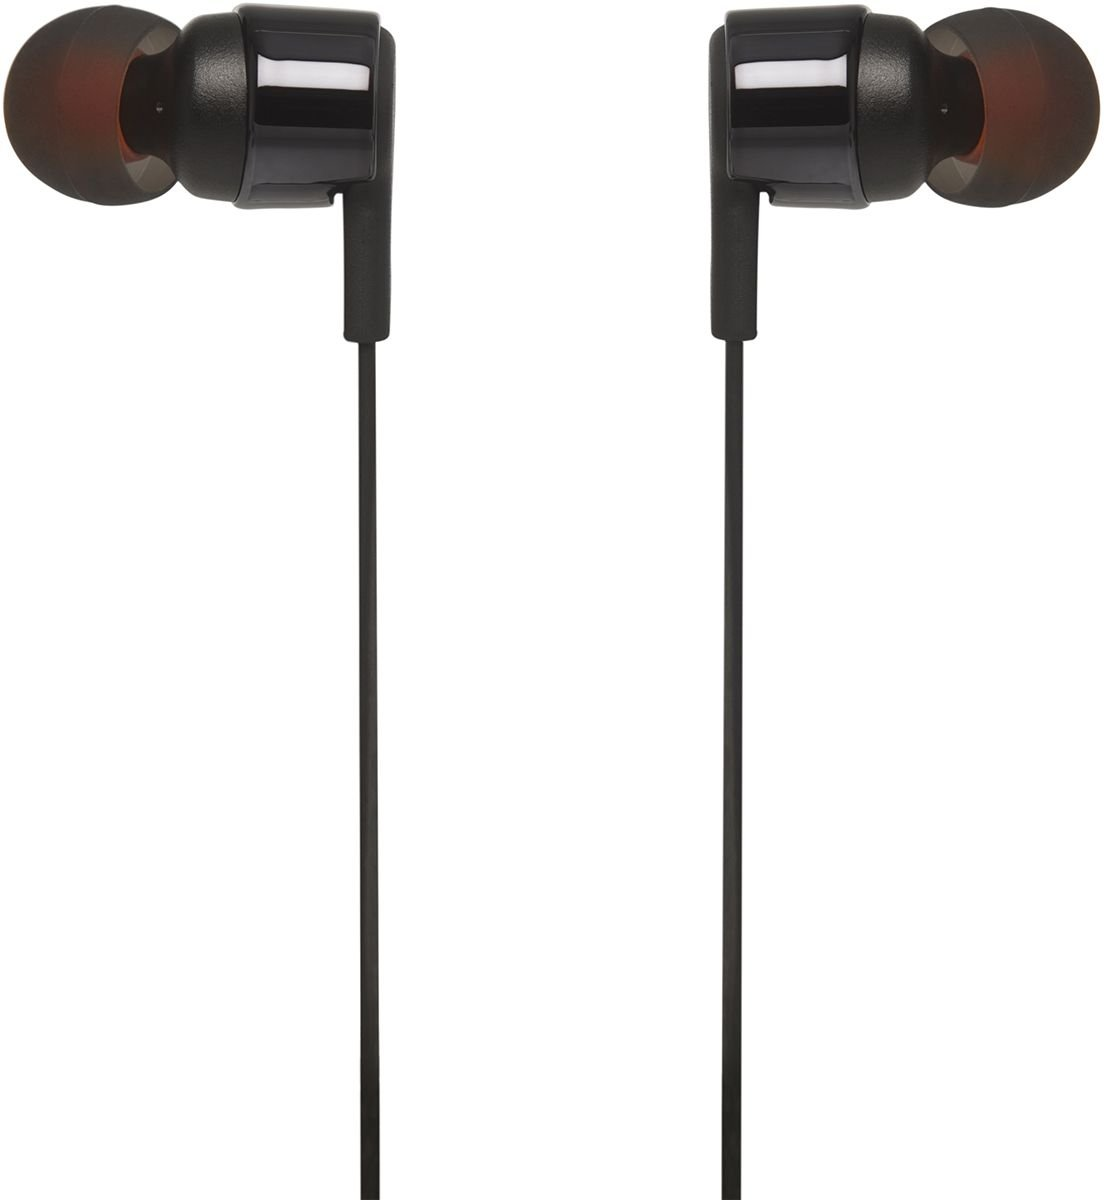 Jbl T210 Signature Sound Pure Bass Headphones In Ear T290 Earphone Gold Earphones With Microphone Black Home Audio Theater